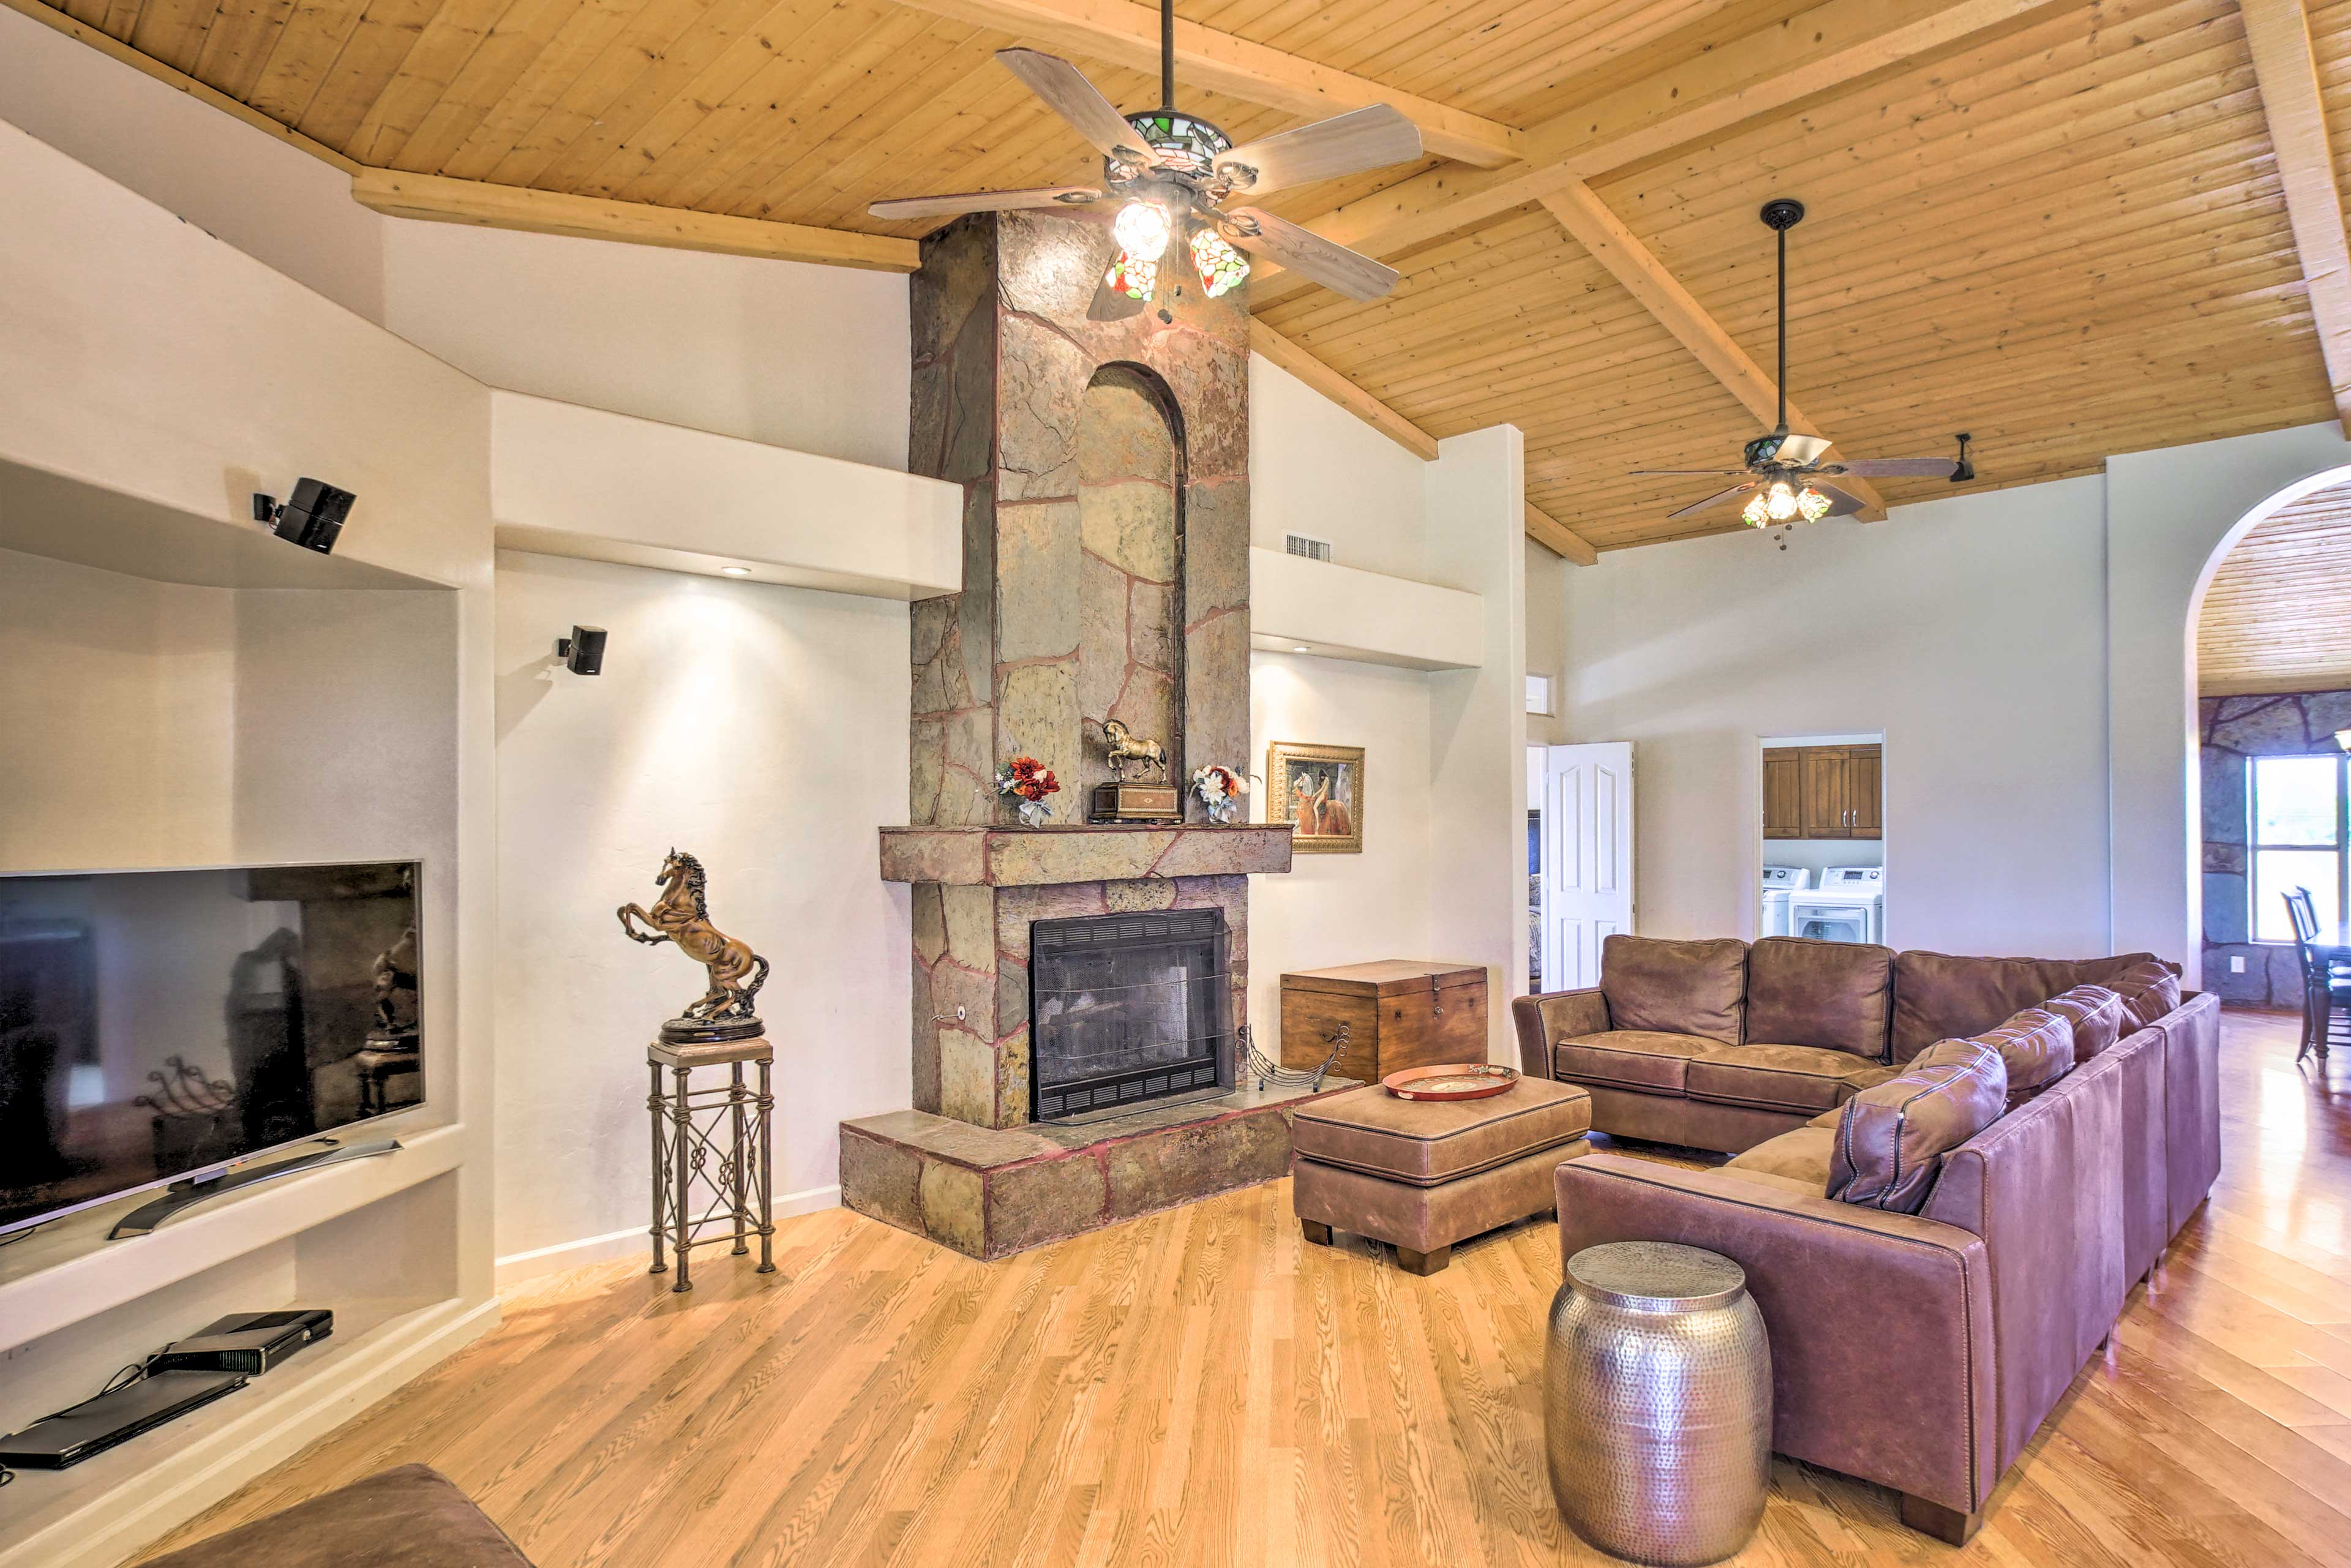 The interior boasts almost 3,000 square feet of luxurious living space.